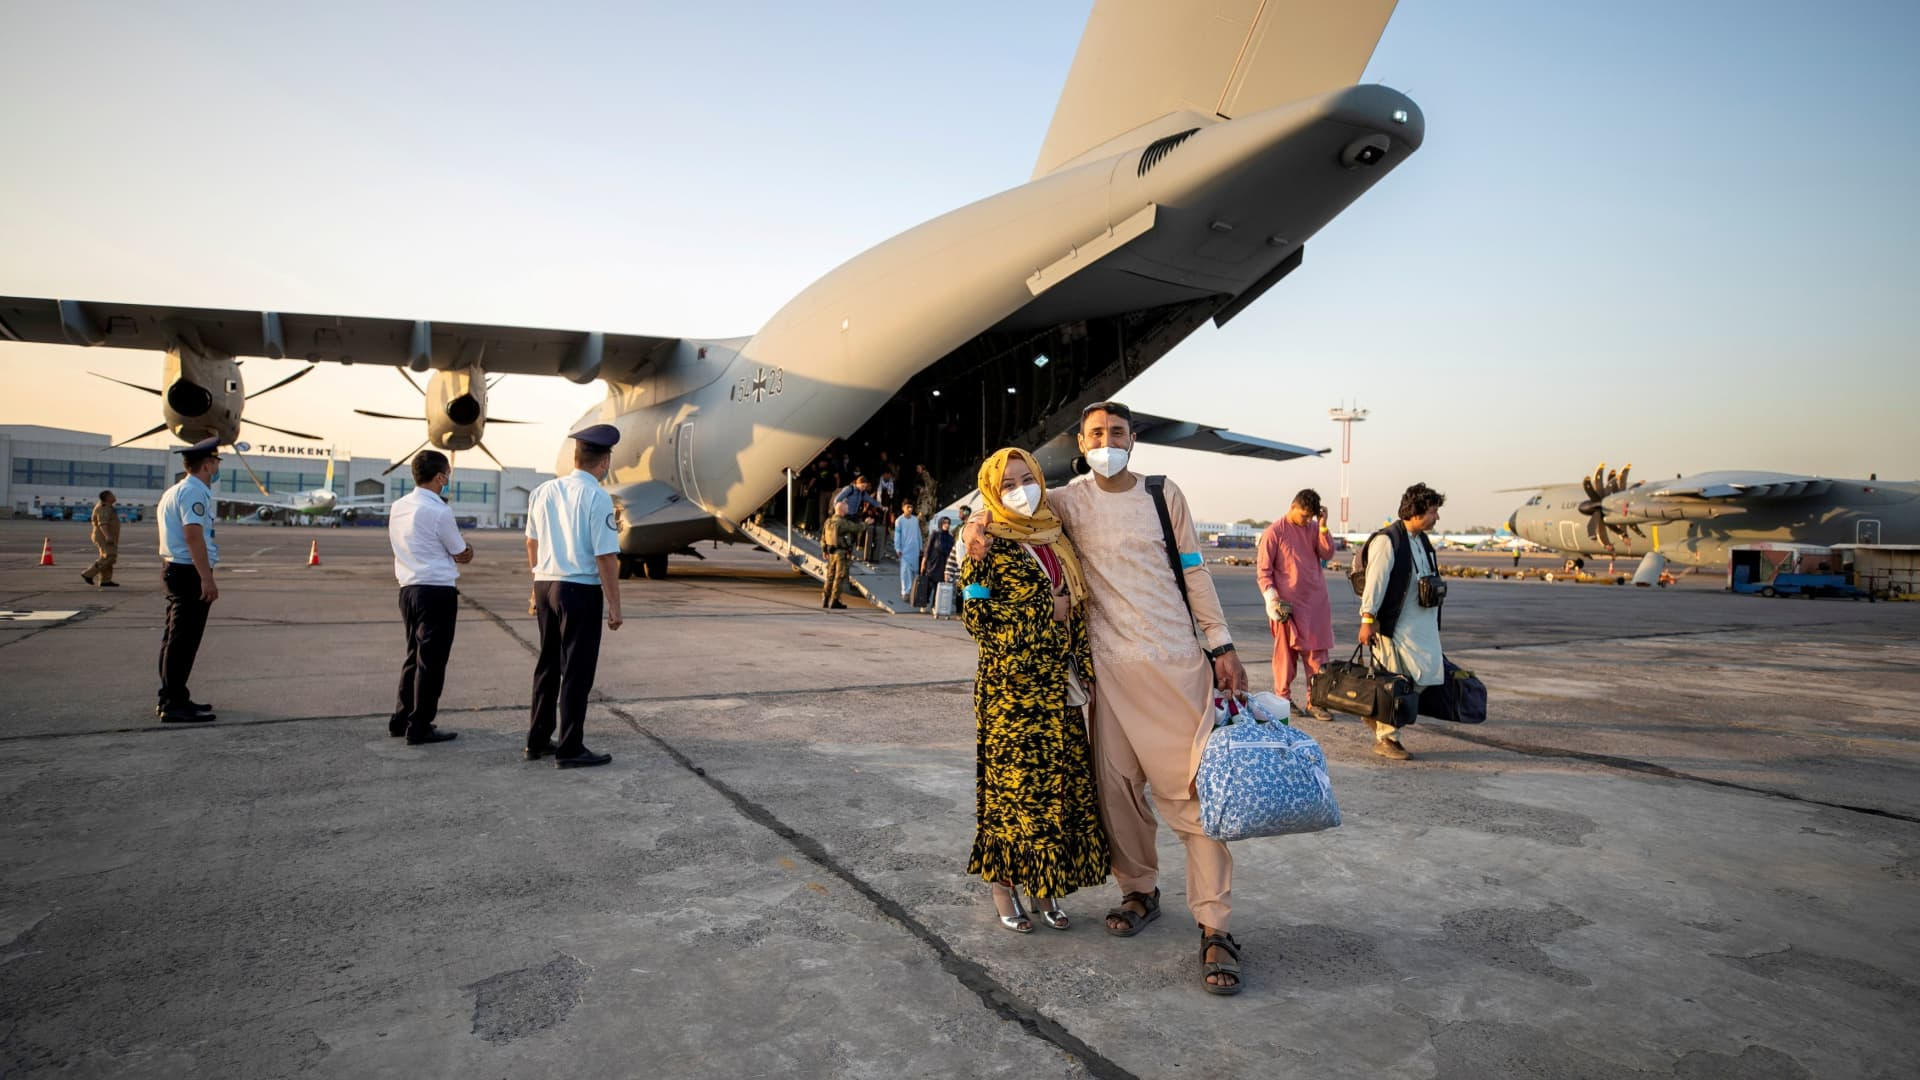 A handout photo obtained from Twitter via @Bw_Einsatz on August 17, 2021 shows evacuees from Afghanistan as they arrive in an Airbus A400 transport aircraft of the German Air Force Luftwaffe in Tashkent, Uzbekistan.